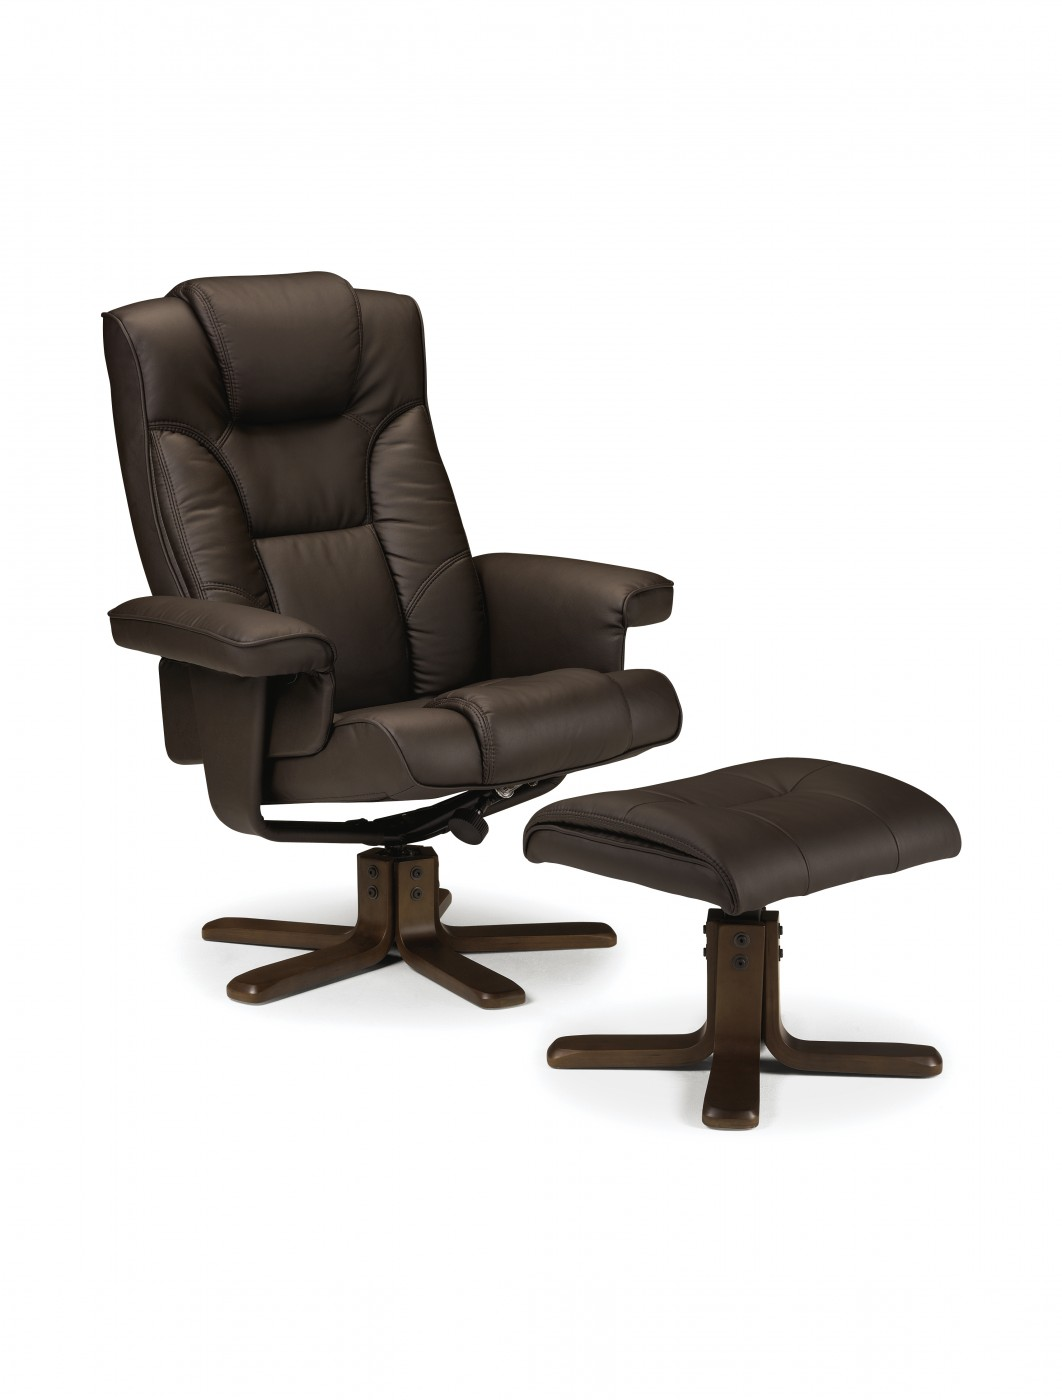 chairs that swivel and recline parson target recliner chair mal001 121 office furniture